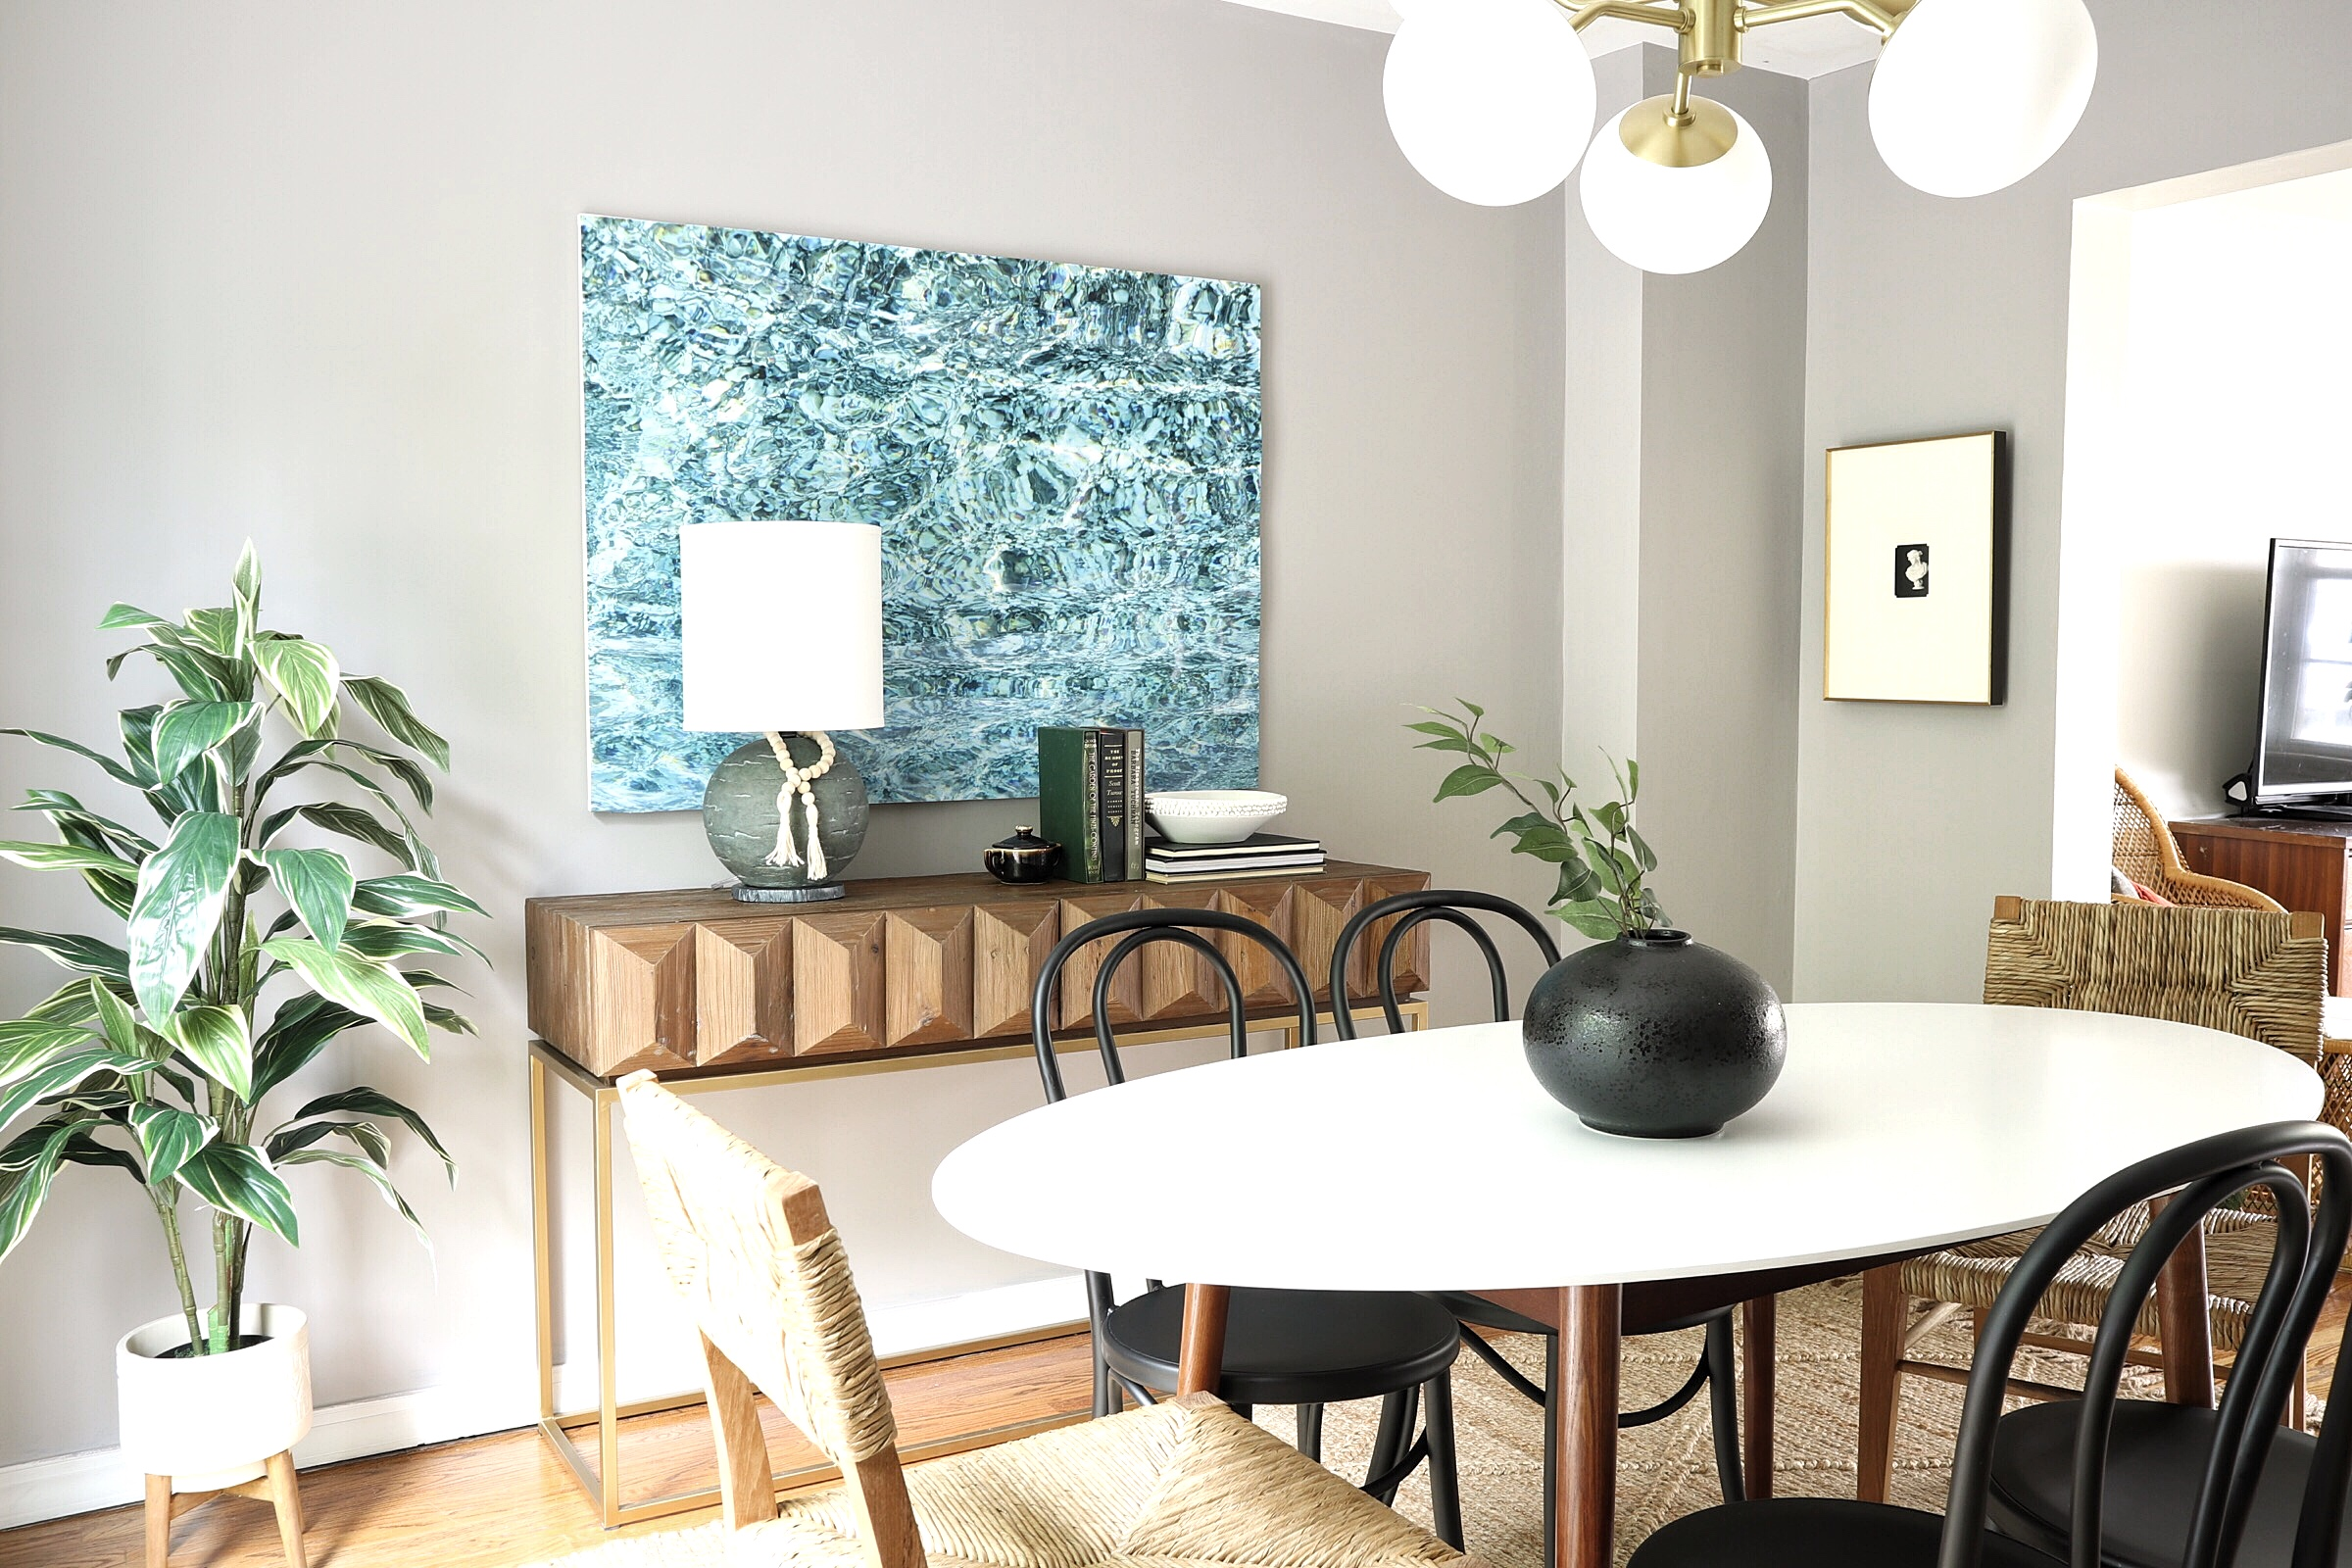 Coe Casa Dining Room - I gave our dining room a makeover this past April and I love how it turned out! It fits in with the rest of our house so much better now. Check out the before and afters!